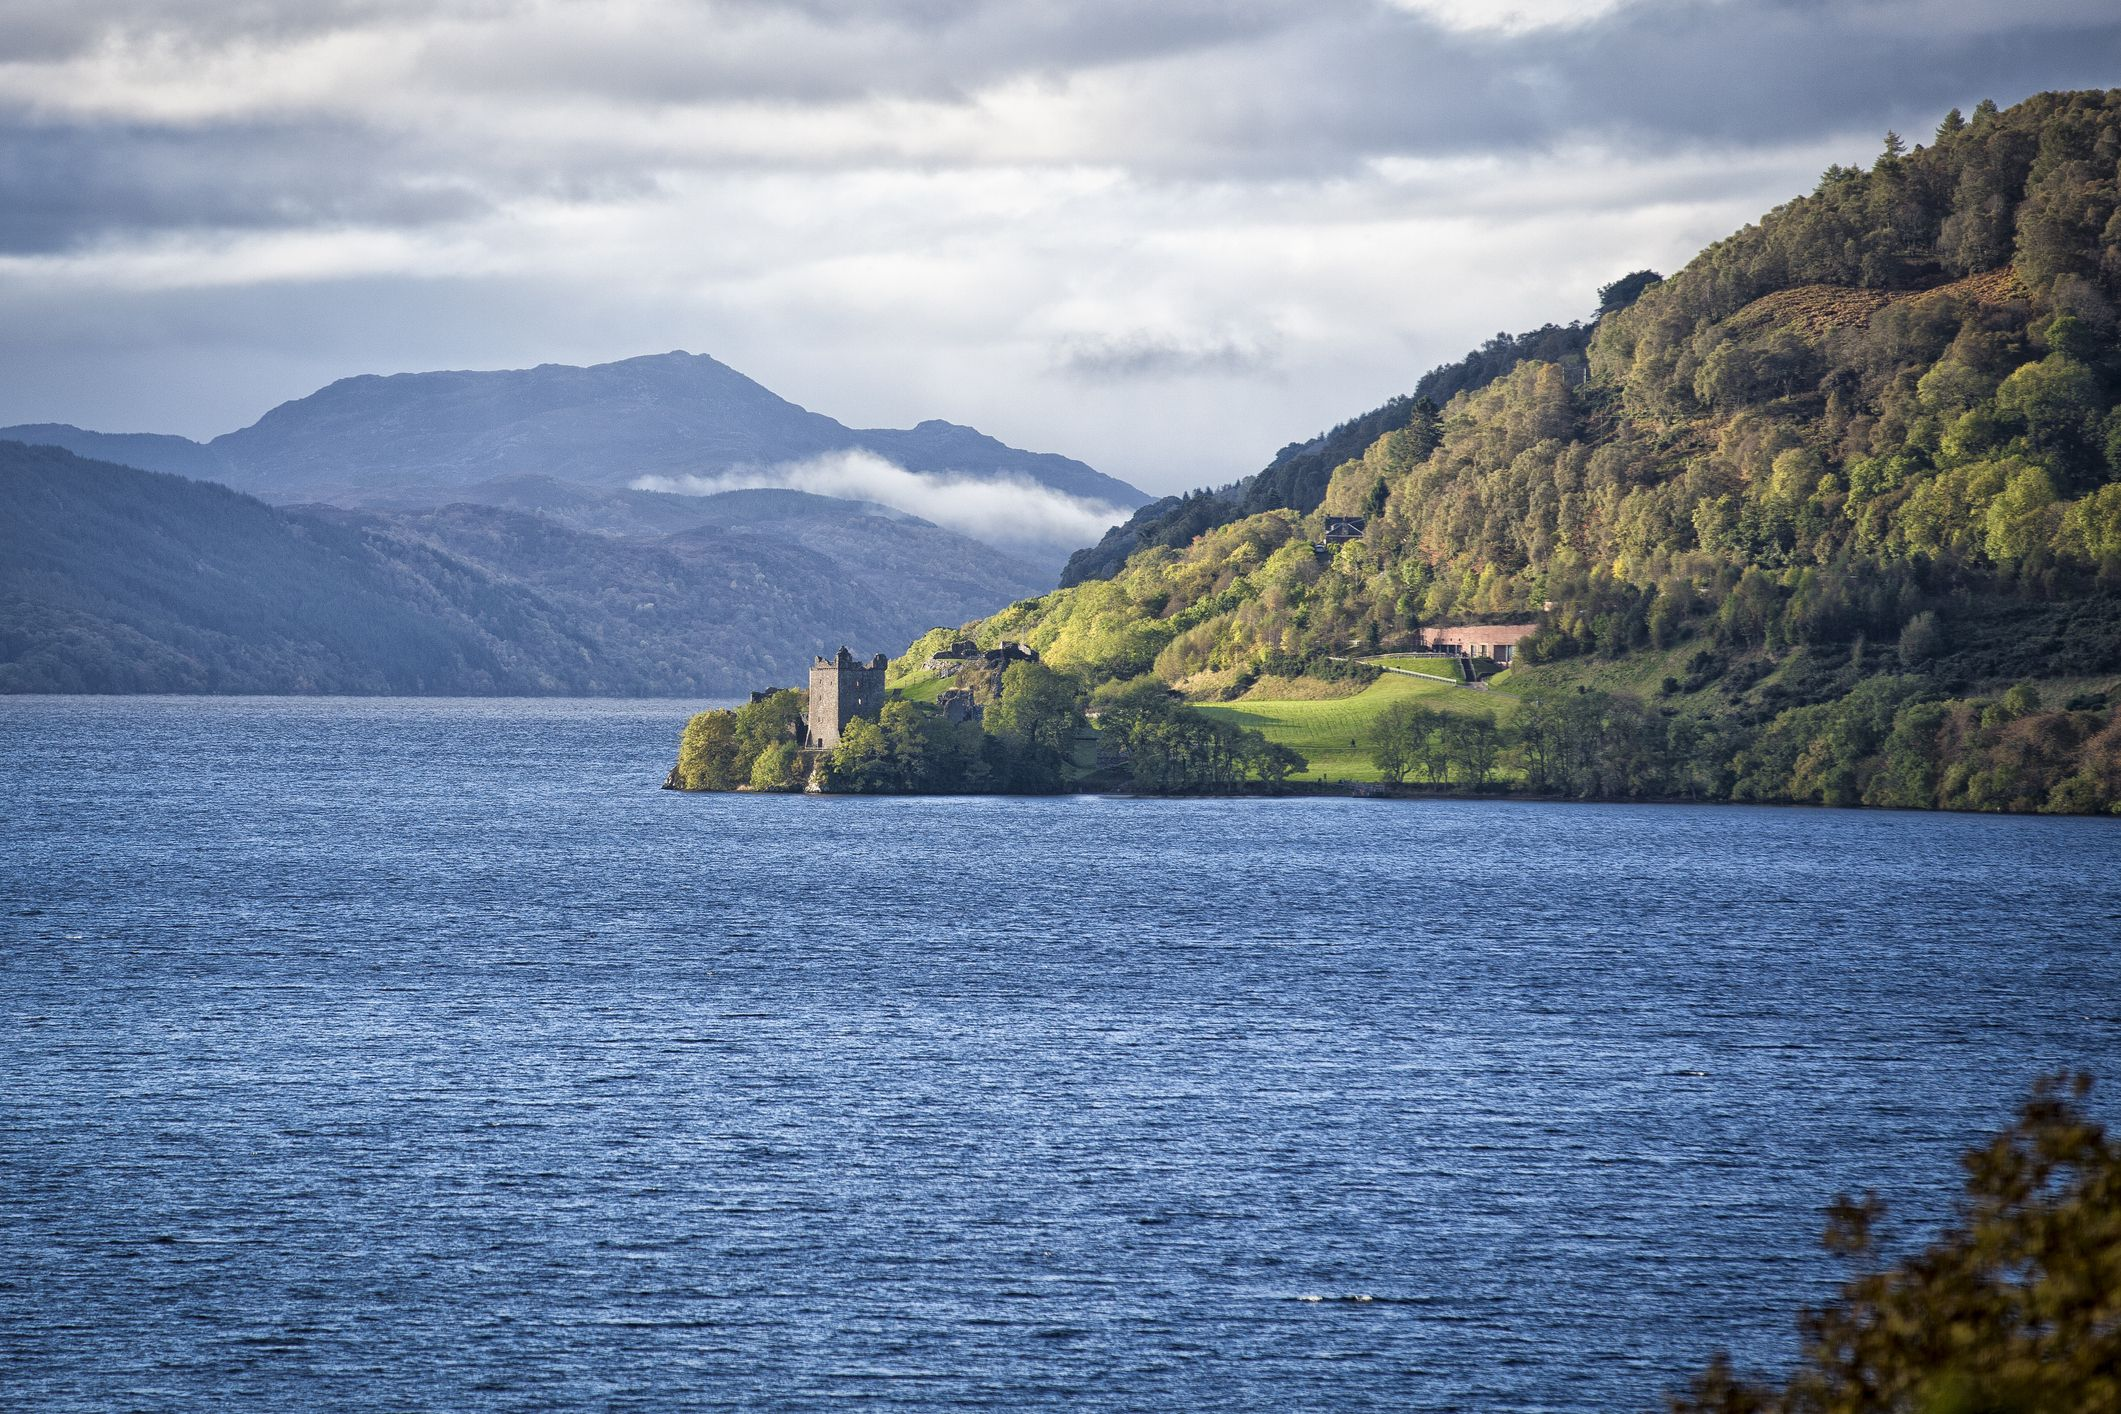 80 mile ultra marathon planned for Loch Ness circuit